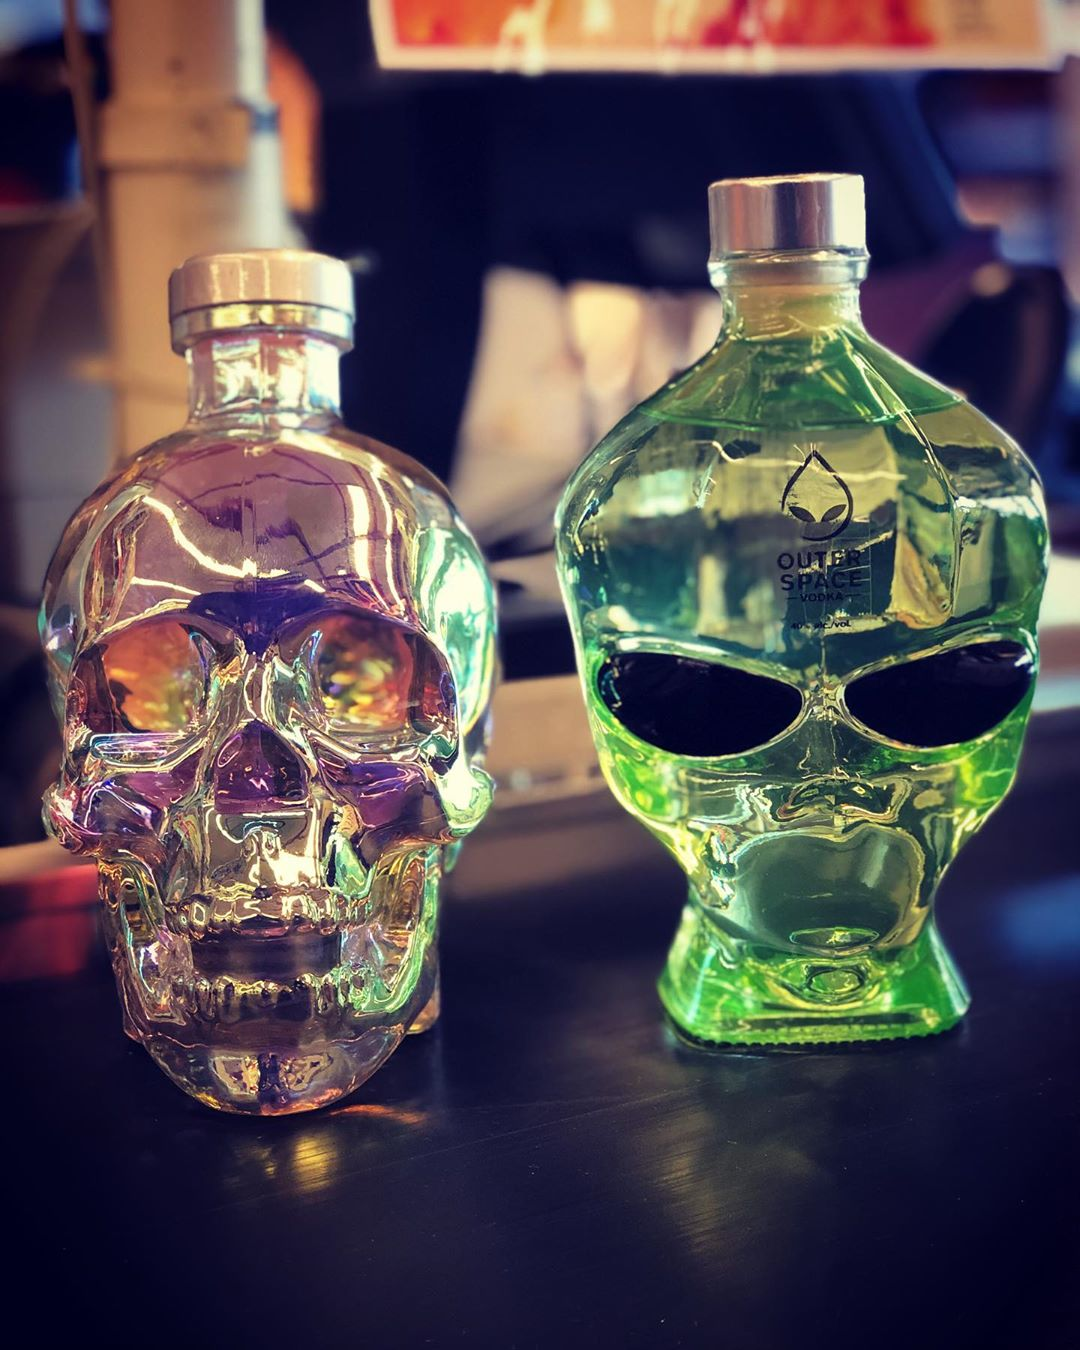 Looking for some Halloween Party vodka? Check these out from @crystalheadvodka and @outerspacevodka … both…